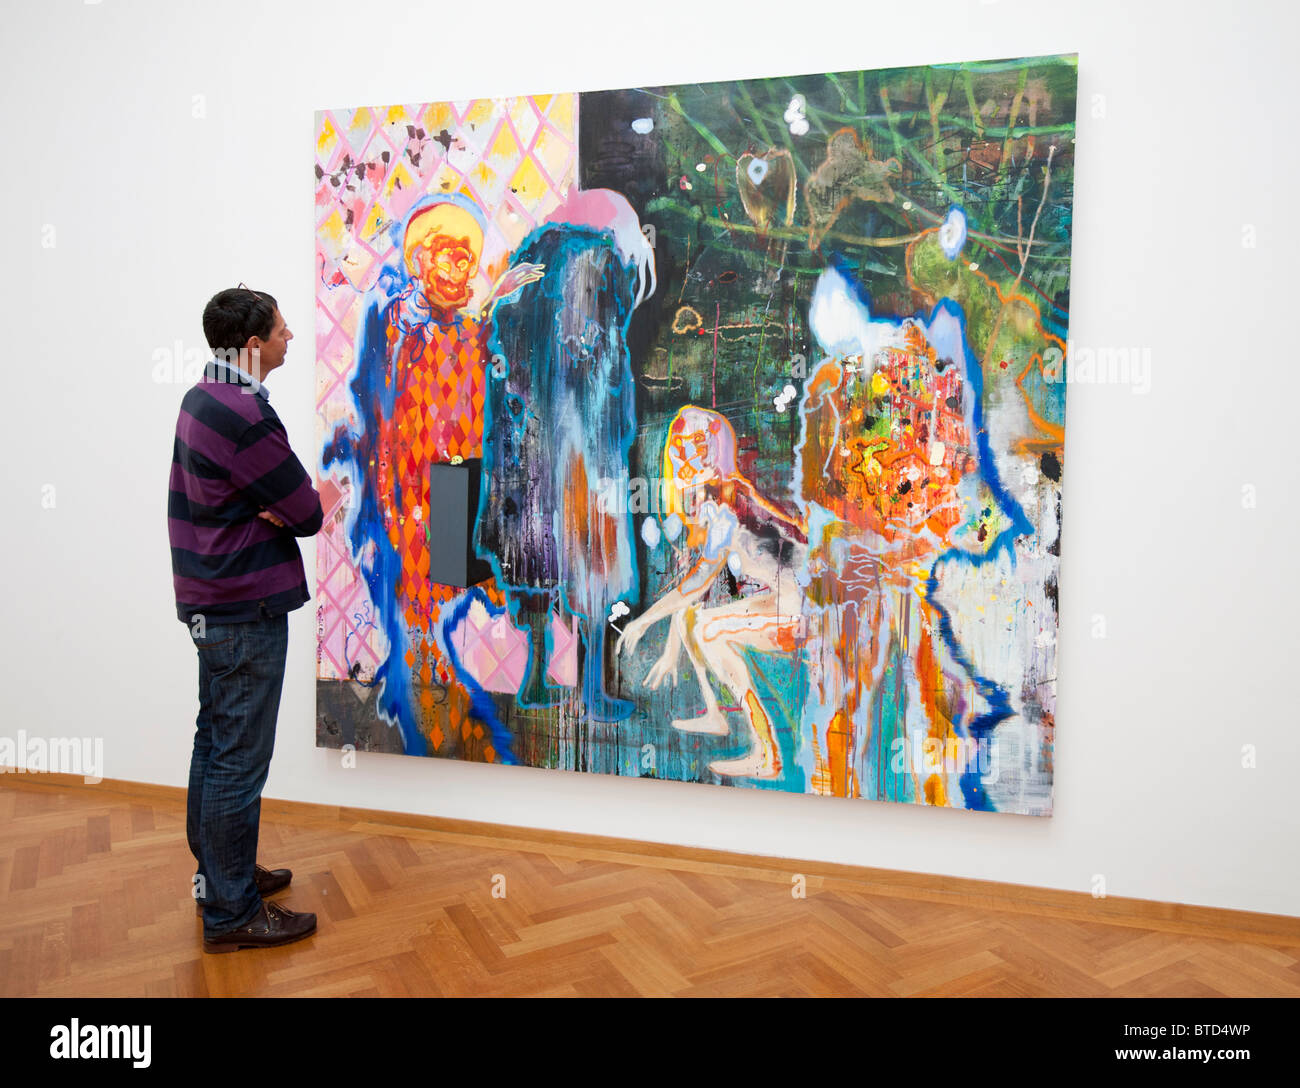 Man looking at painting Uwe, Take the Long and Winding Road by Daniel Richter, at the Gemeentemuseum in The Hague - Stock Image